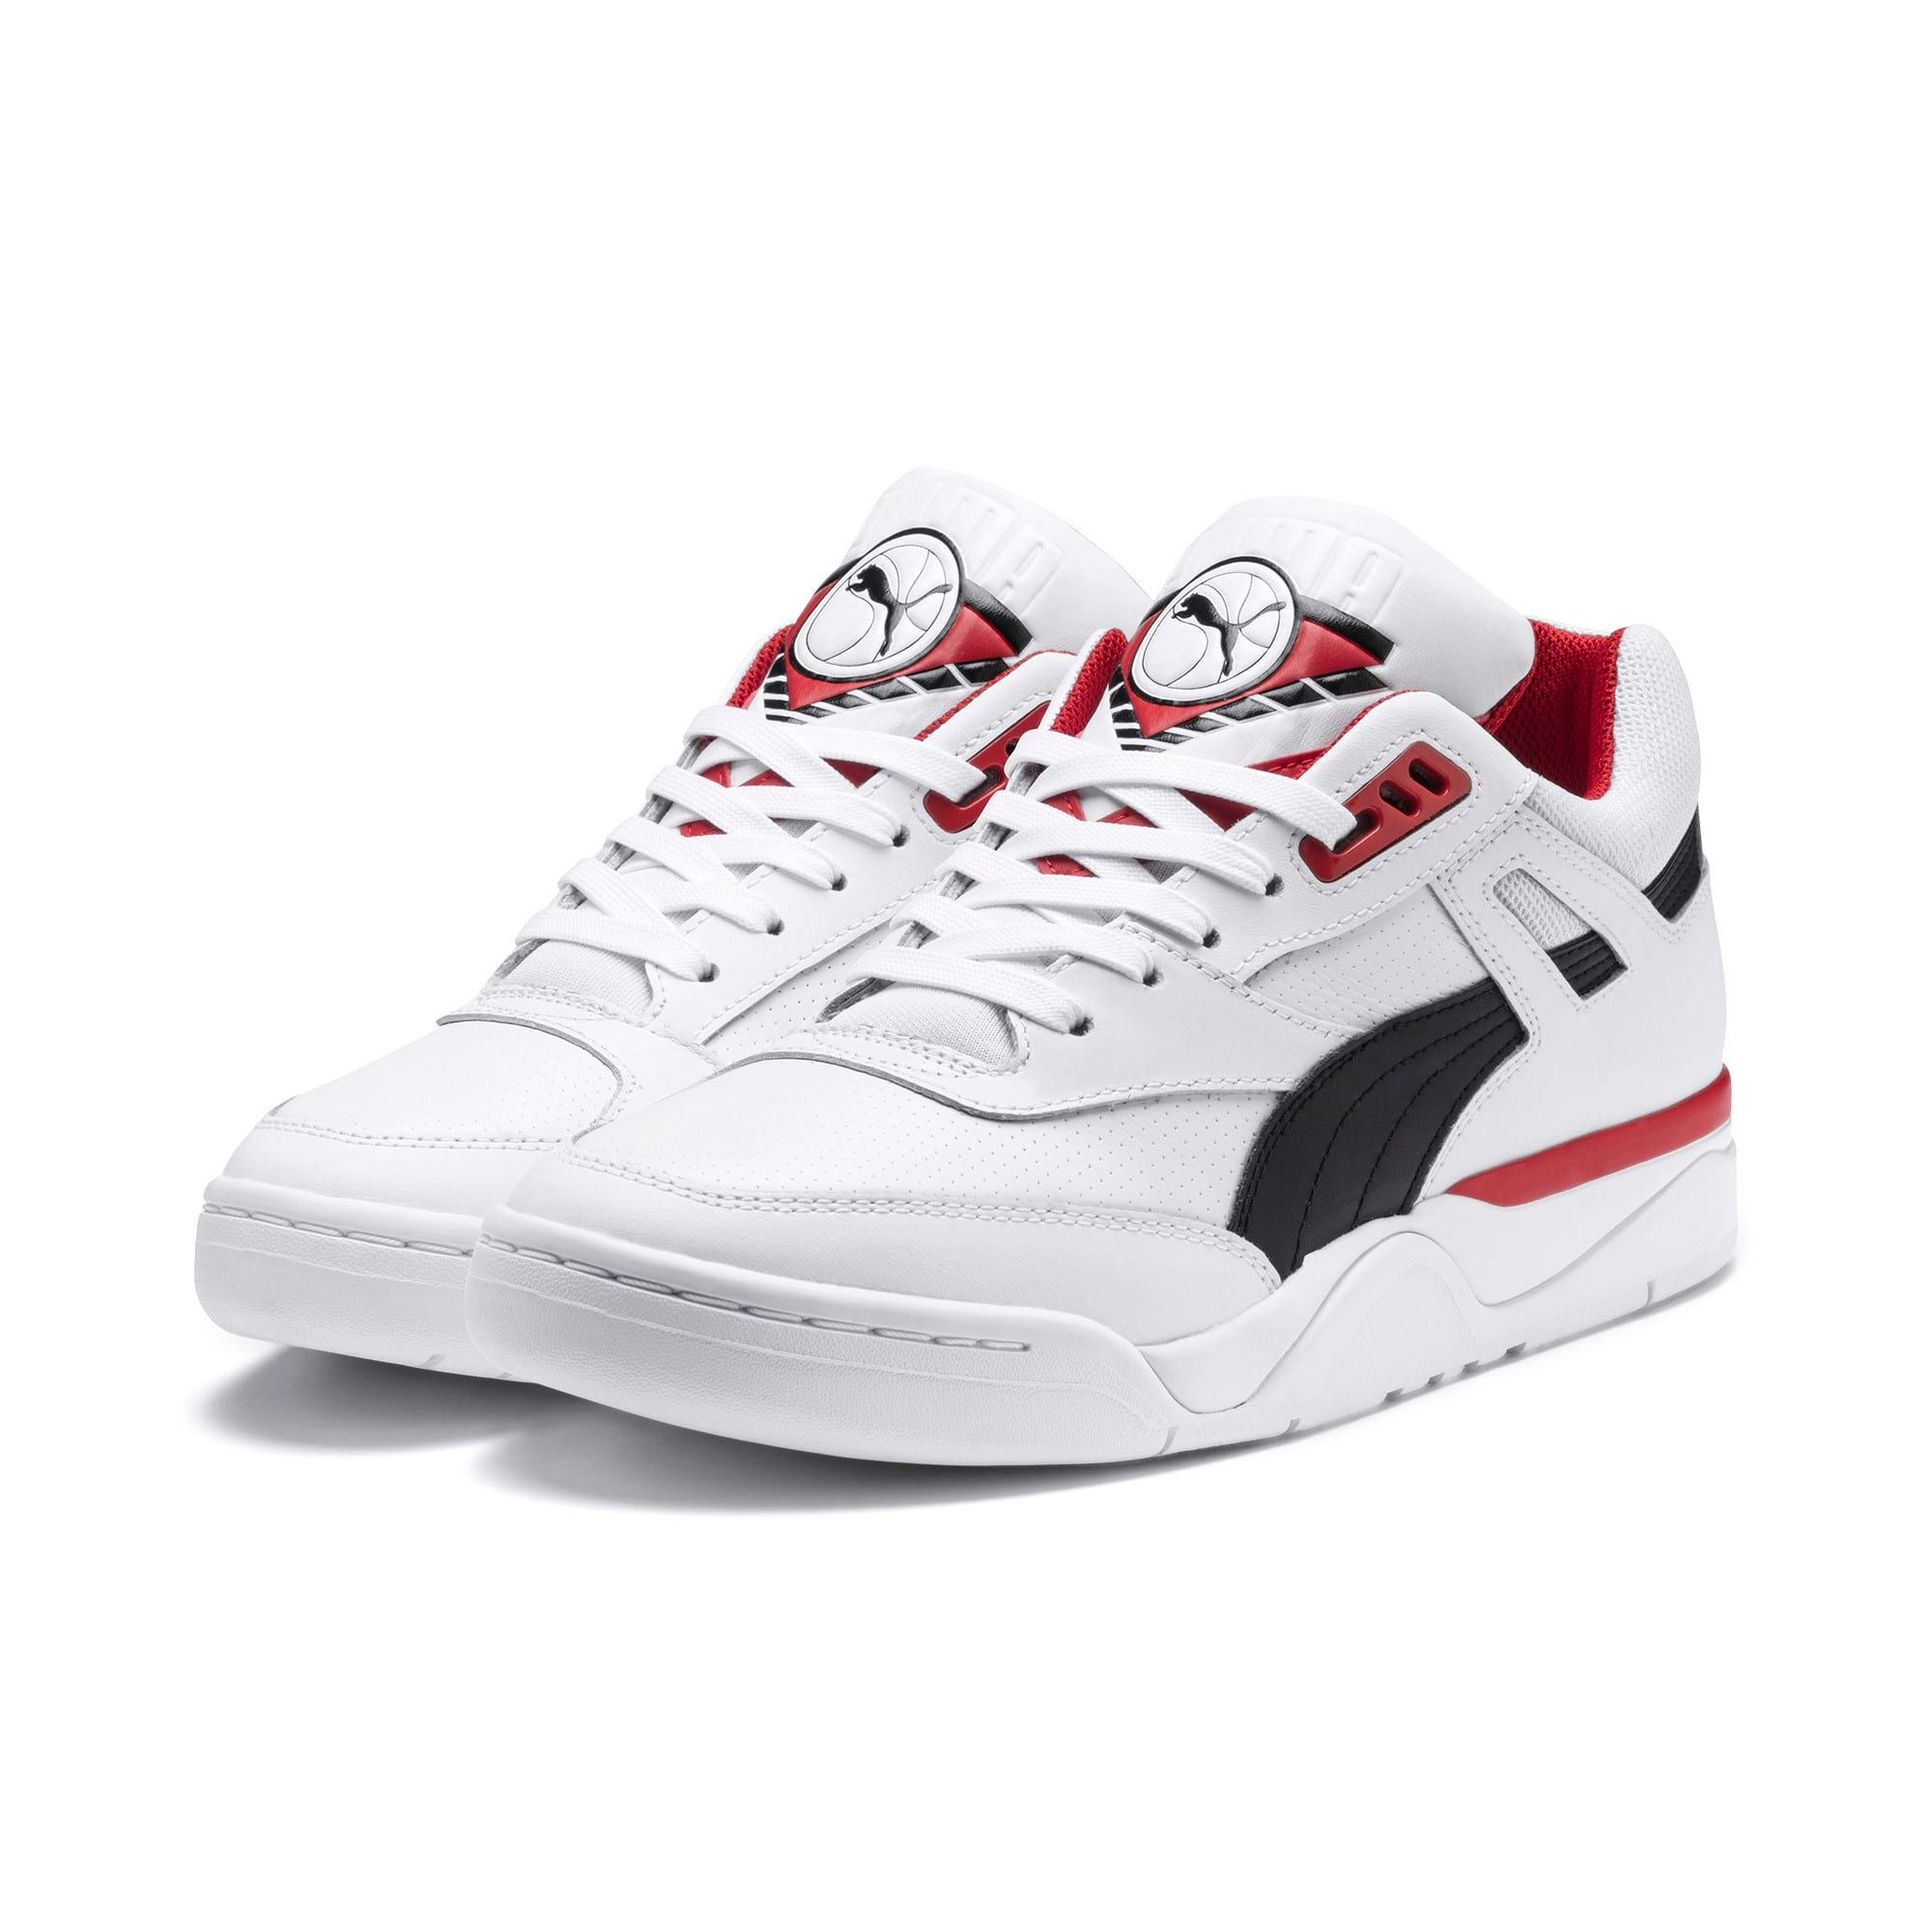 PUMA Palace Guard Men's Basketball Trainers in White/Black/Red size 10.5